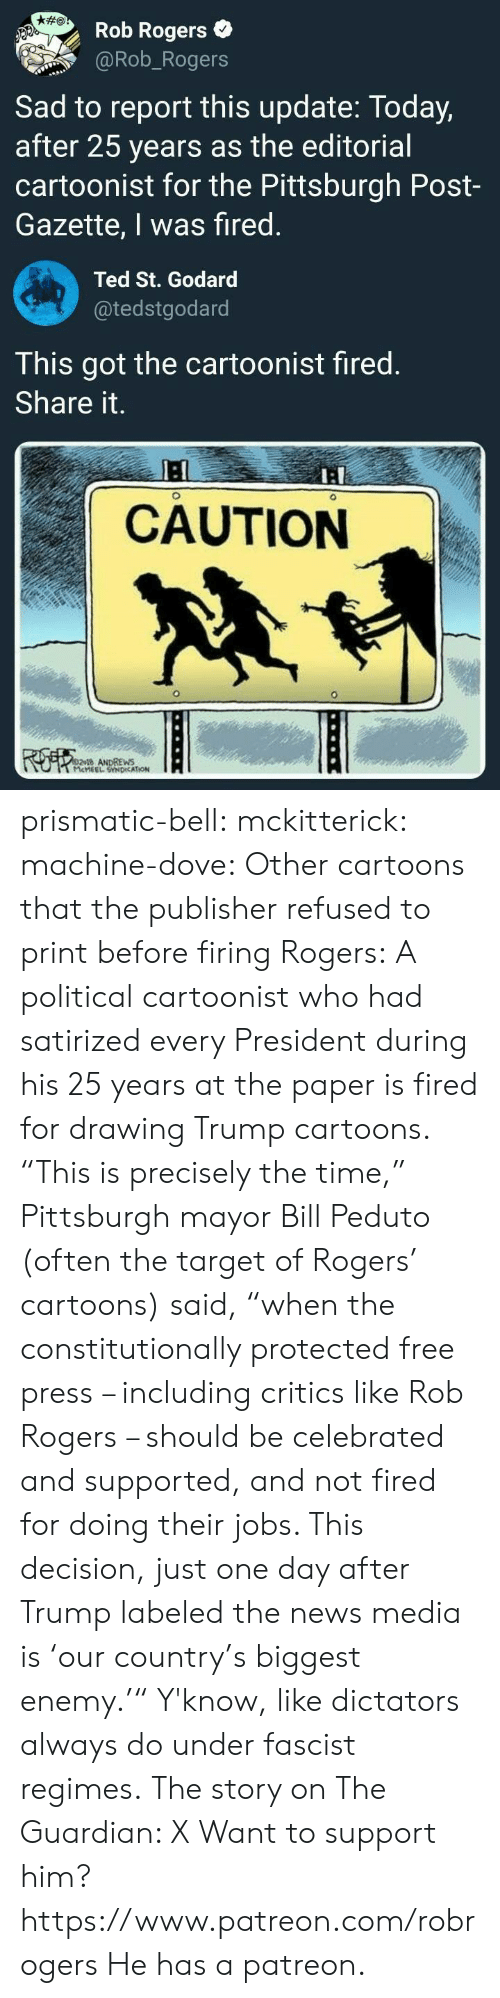 "refused: Rob Rogers  @Rob_Rogers  Sad to report this update: Today,  after 25 years as the editorial  cartoonist for the Pittsburgh Post-  Gazette, I was fired  Ted St. Godard  @tedstgodard  This got the cartoonist fired  Share it.  I:  CAUTION  ANDREWS prismatic-bell: mckitterick:  machine-dove:  Other cartoons that the publisher refused to print before firing Rogers:   A political cartoonist who had satirized every President during his 25 years at the paper is fired for drawing Trump cartoons.  ""This is precisely the time,"" Pittsburgh mayor Bill Peduto (often the target of Rogers' cartoons) said, ""when the constitutionally protected free press – including critics like Rob Rogers – should be celebrated and supported, and not fired for doing their jobs. This decision, just one day after Trump labeled the news media is 'our country's biggest enemy.'"" Y'know, like dictators always do under fascist regimes. The story on The Guardian: X  Want to support him?  https://www.patreon.com/robrogers  He has a patreon."